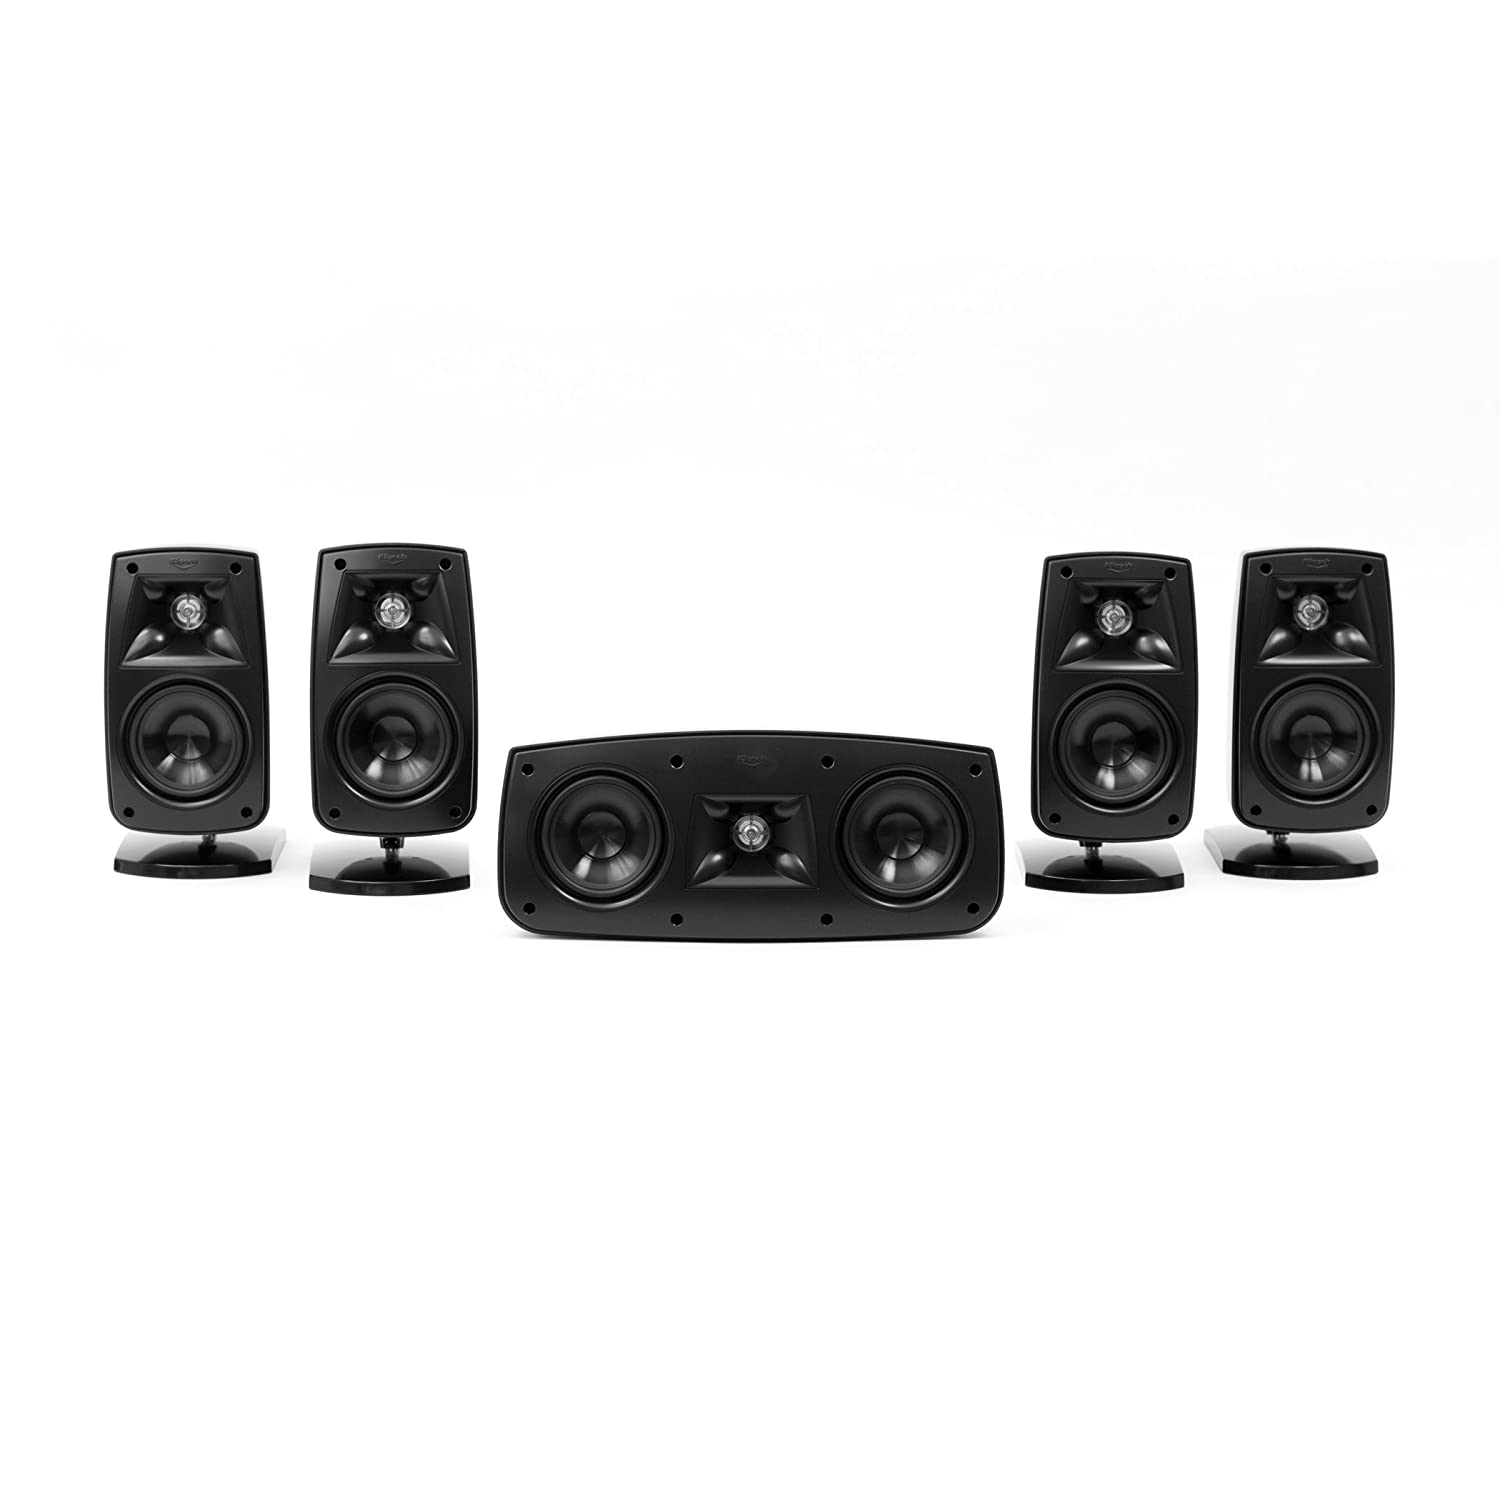 Klipsch Quintet IV Home Theater Speaker System (1010440)(Black High Gloss)